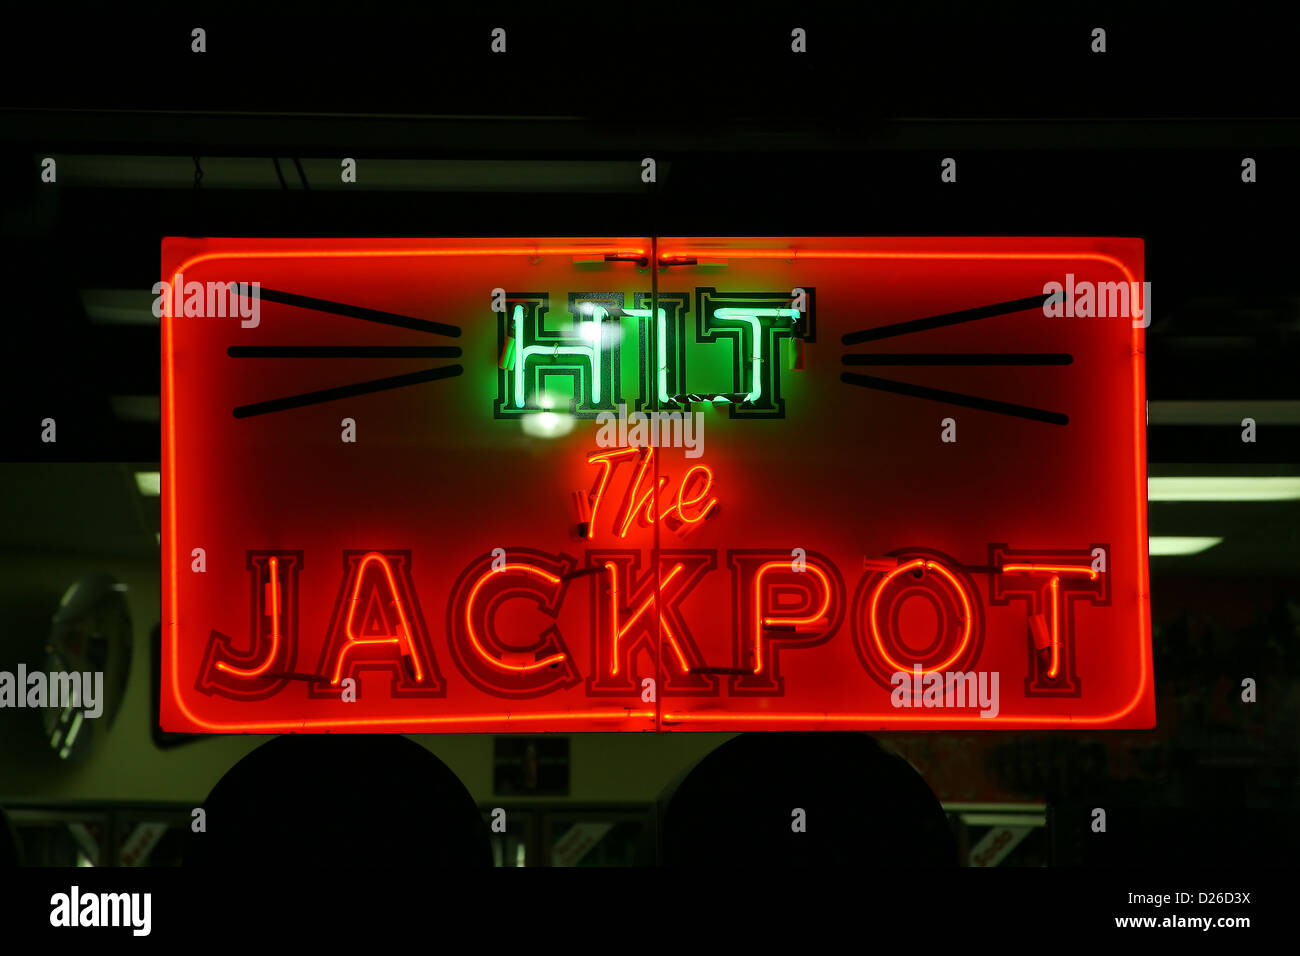 Hit the jackpot neon sign - Stock Image